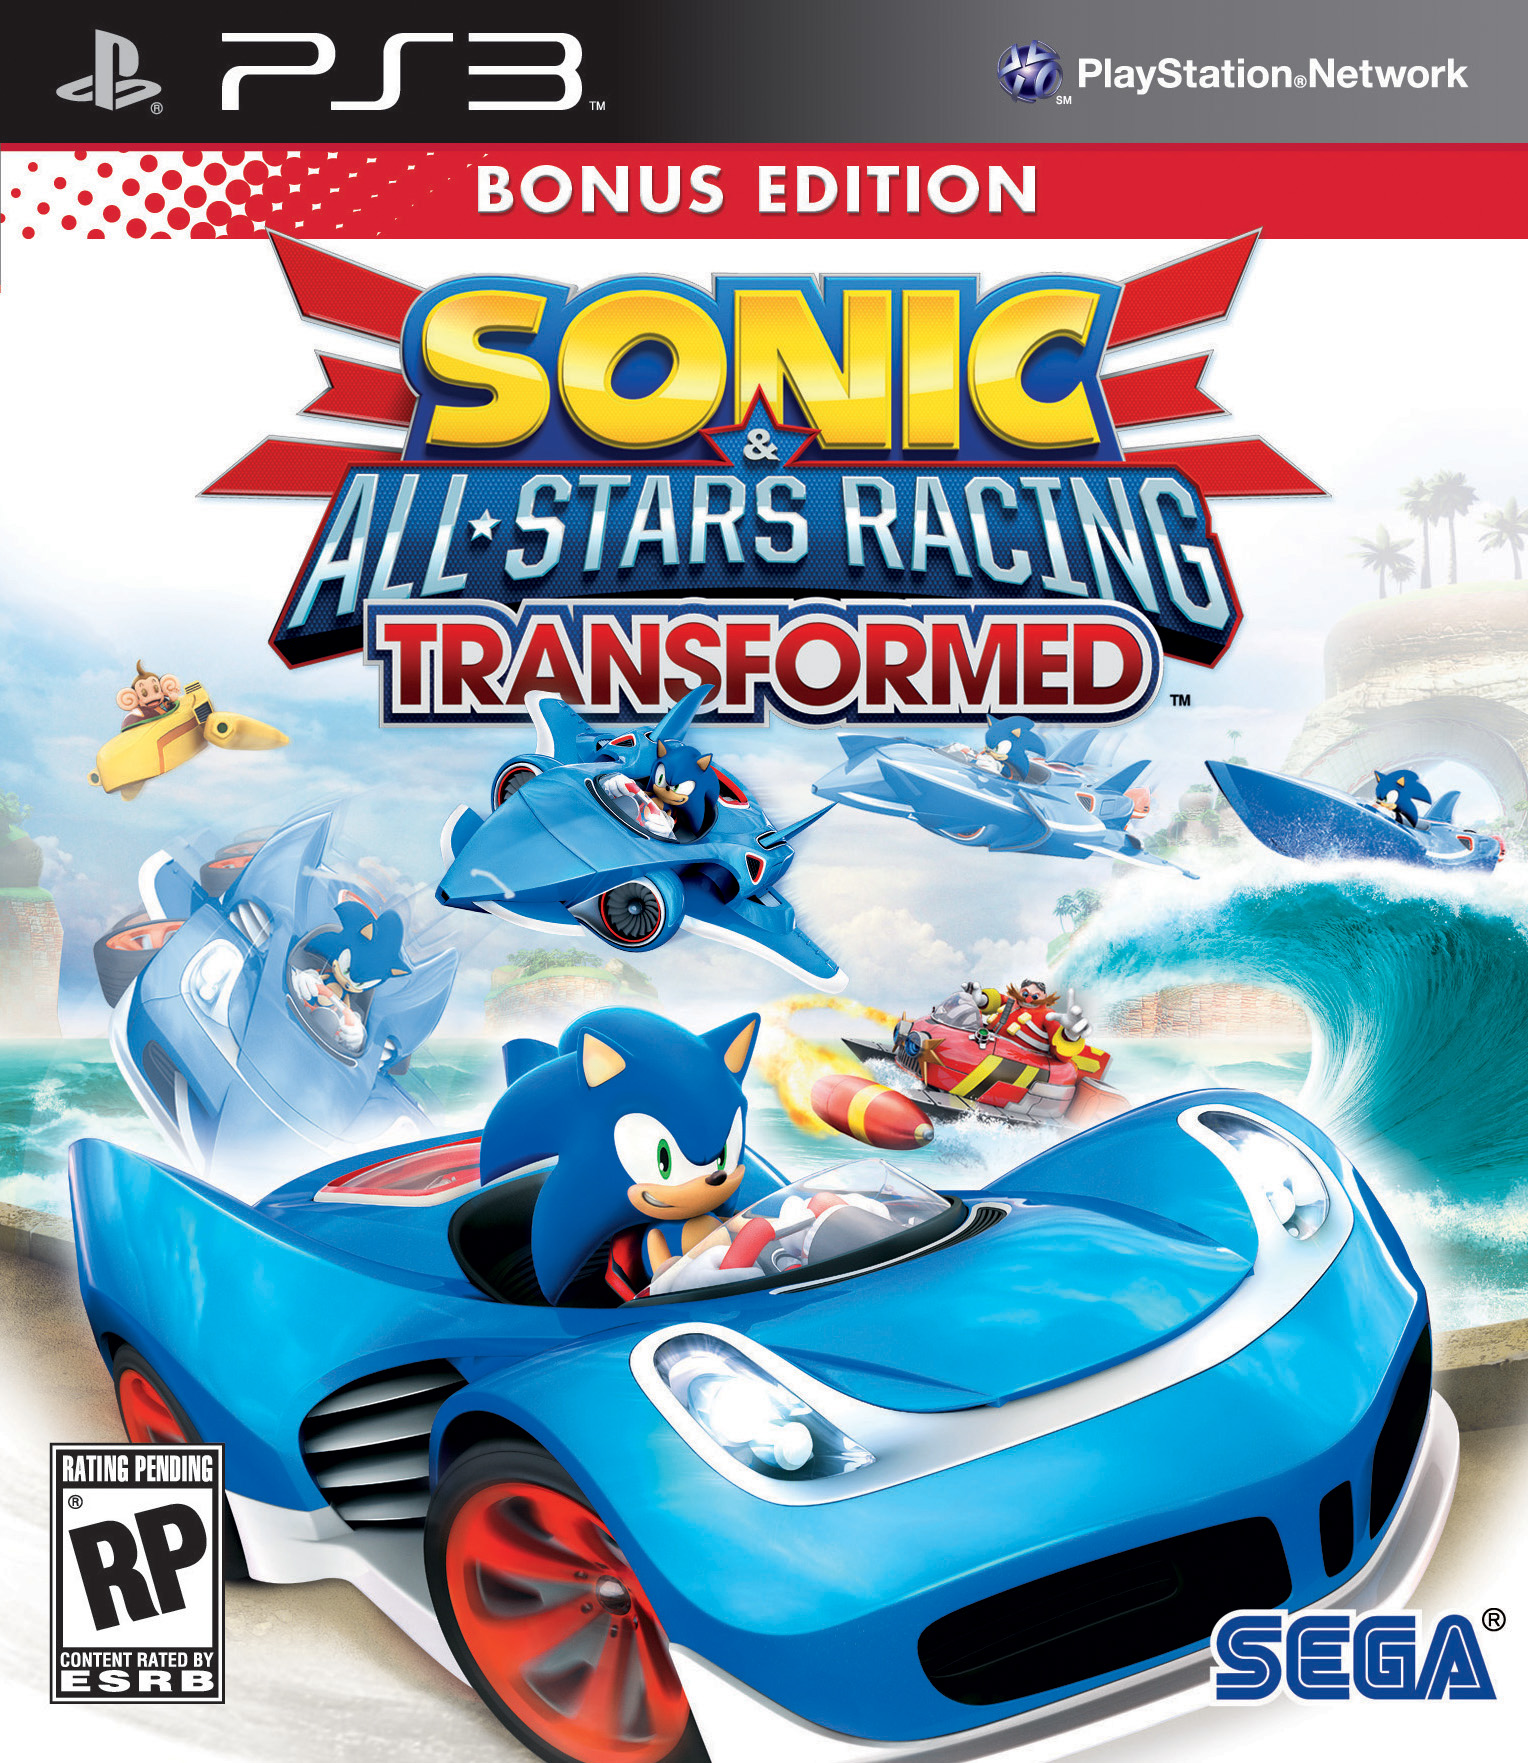 download Sonic & All-Stars Racing Transformed PS3